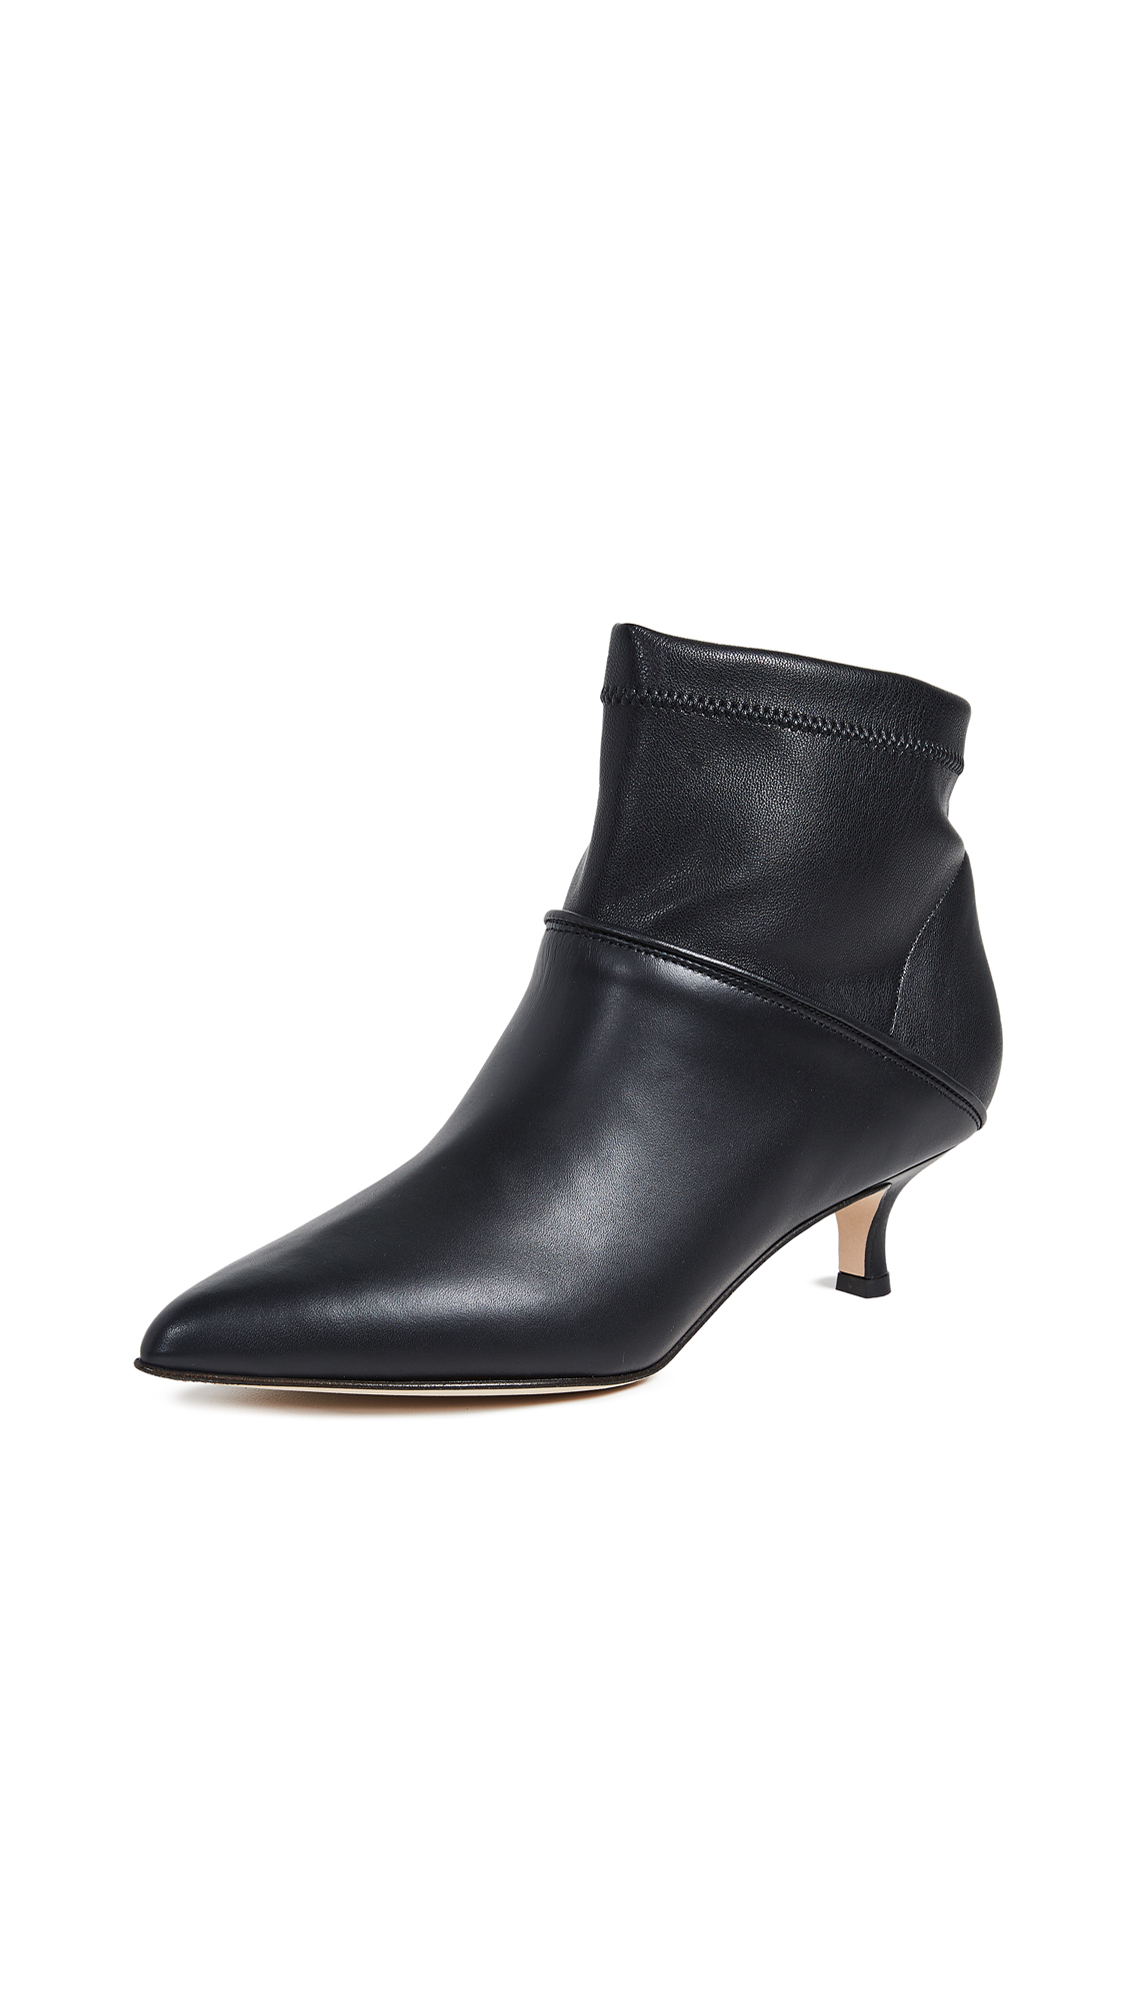 Tibi Jean Booties – 50% Off Sale